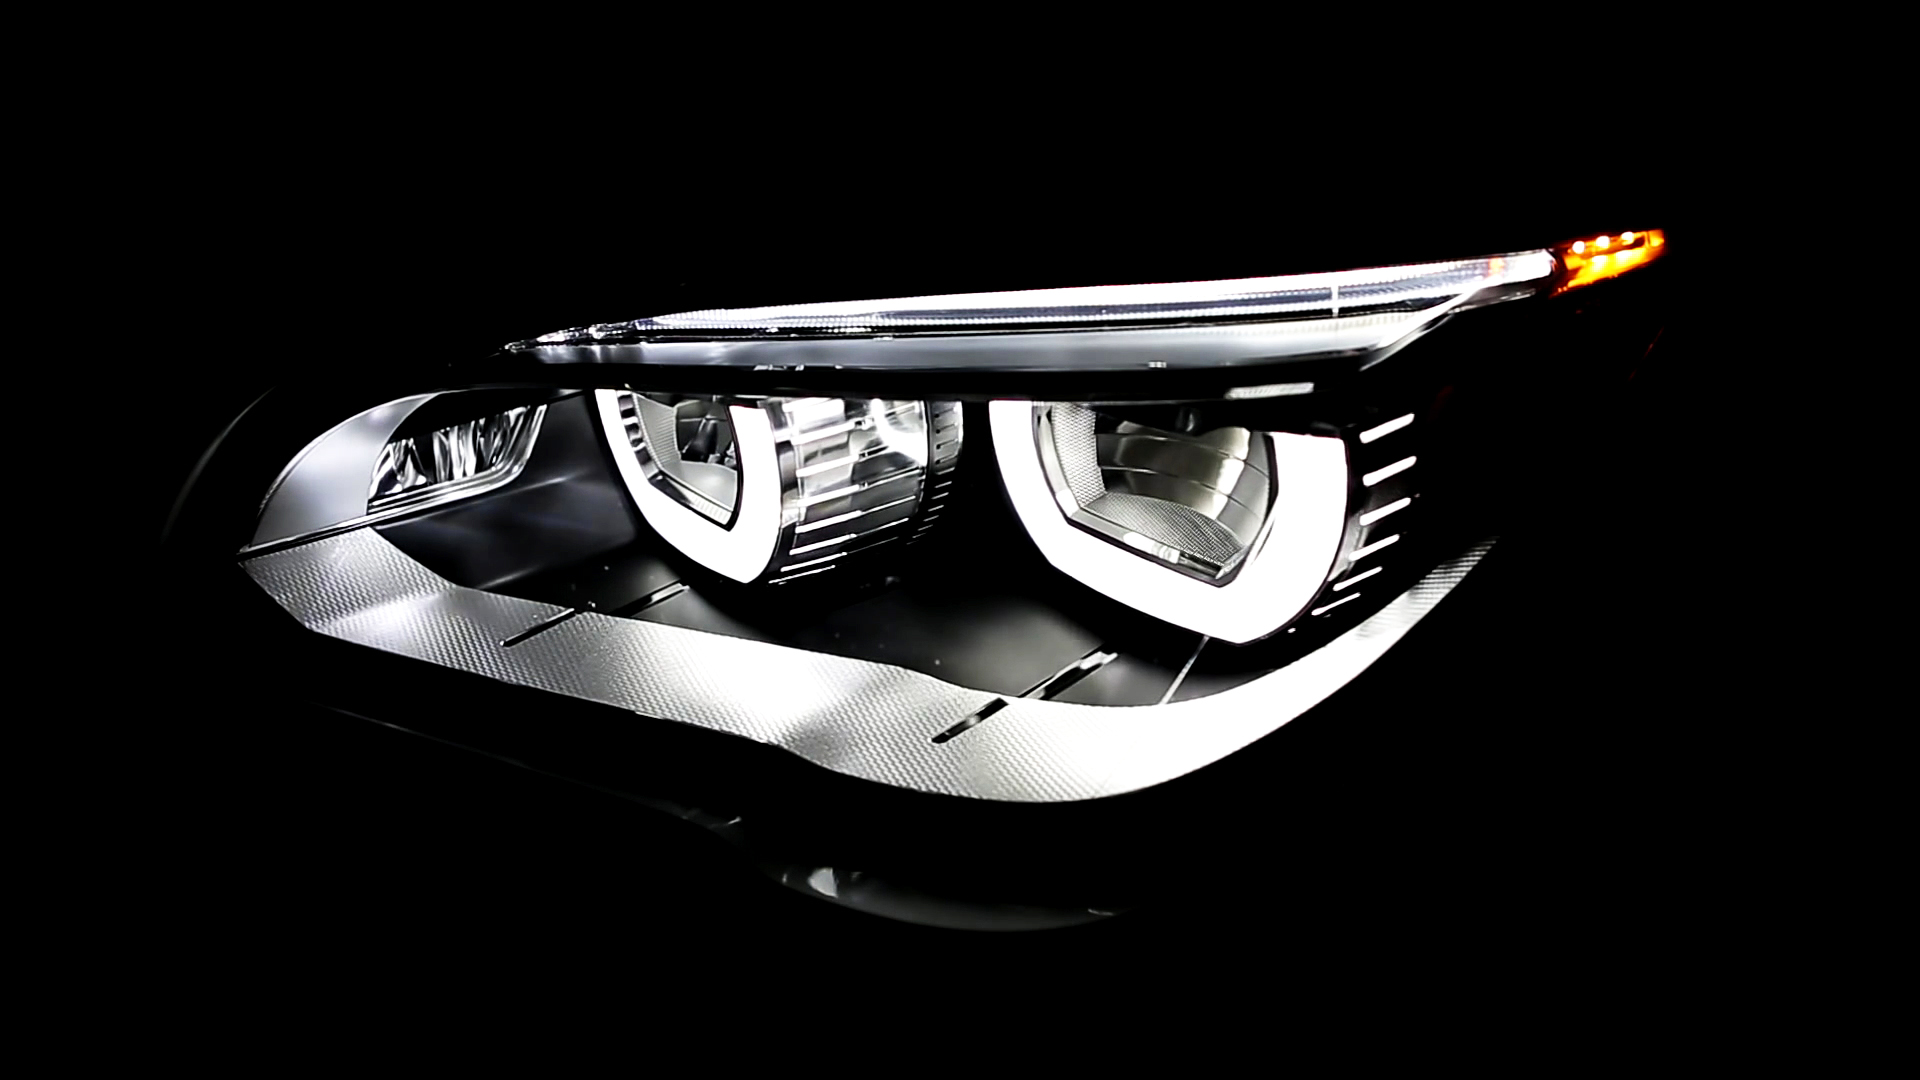 Video: Smarter driver: Adaptive headlights, irritation or innovation?